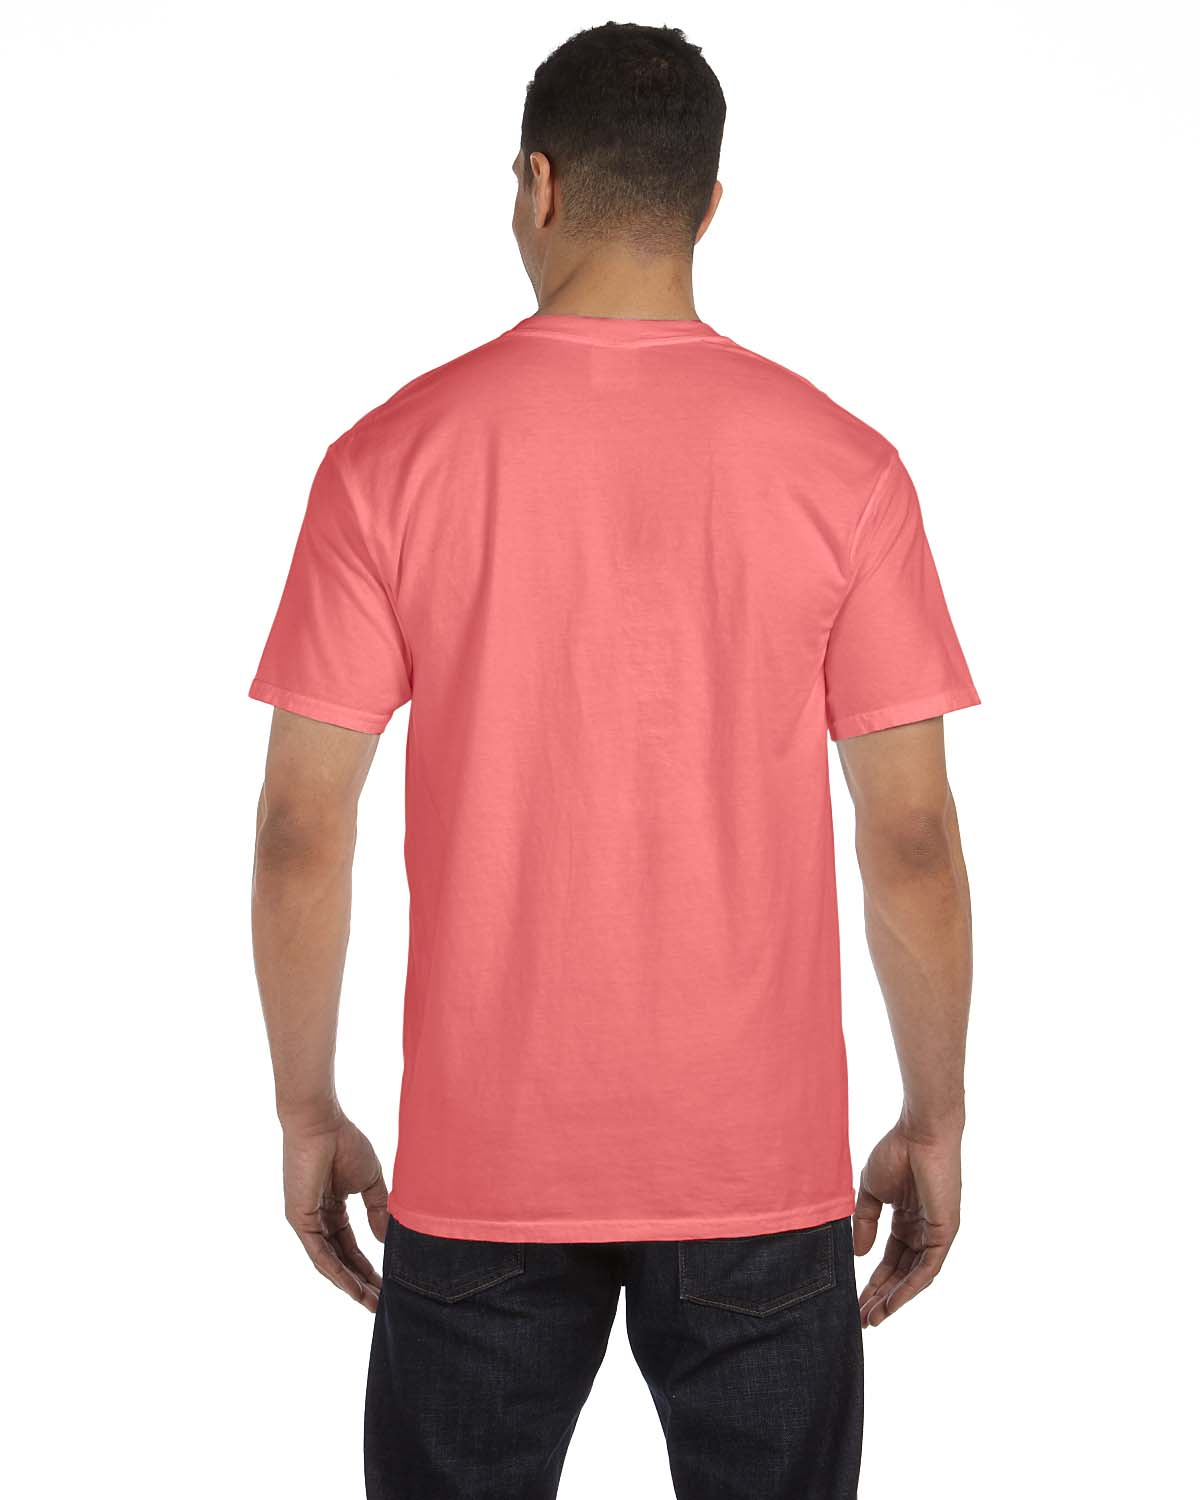 Comfort-Colors-Men-039-s-6-1-oz-Garment-Dyed-Pocket-T-Shirt-6030CC-S-3XL thumbnail 79